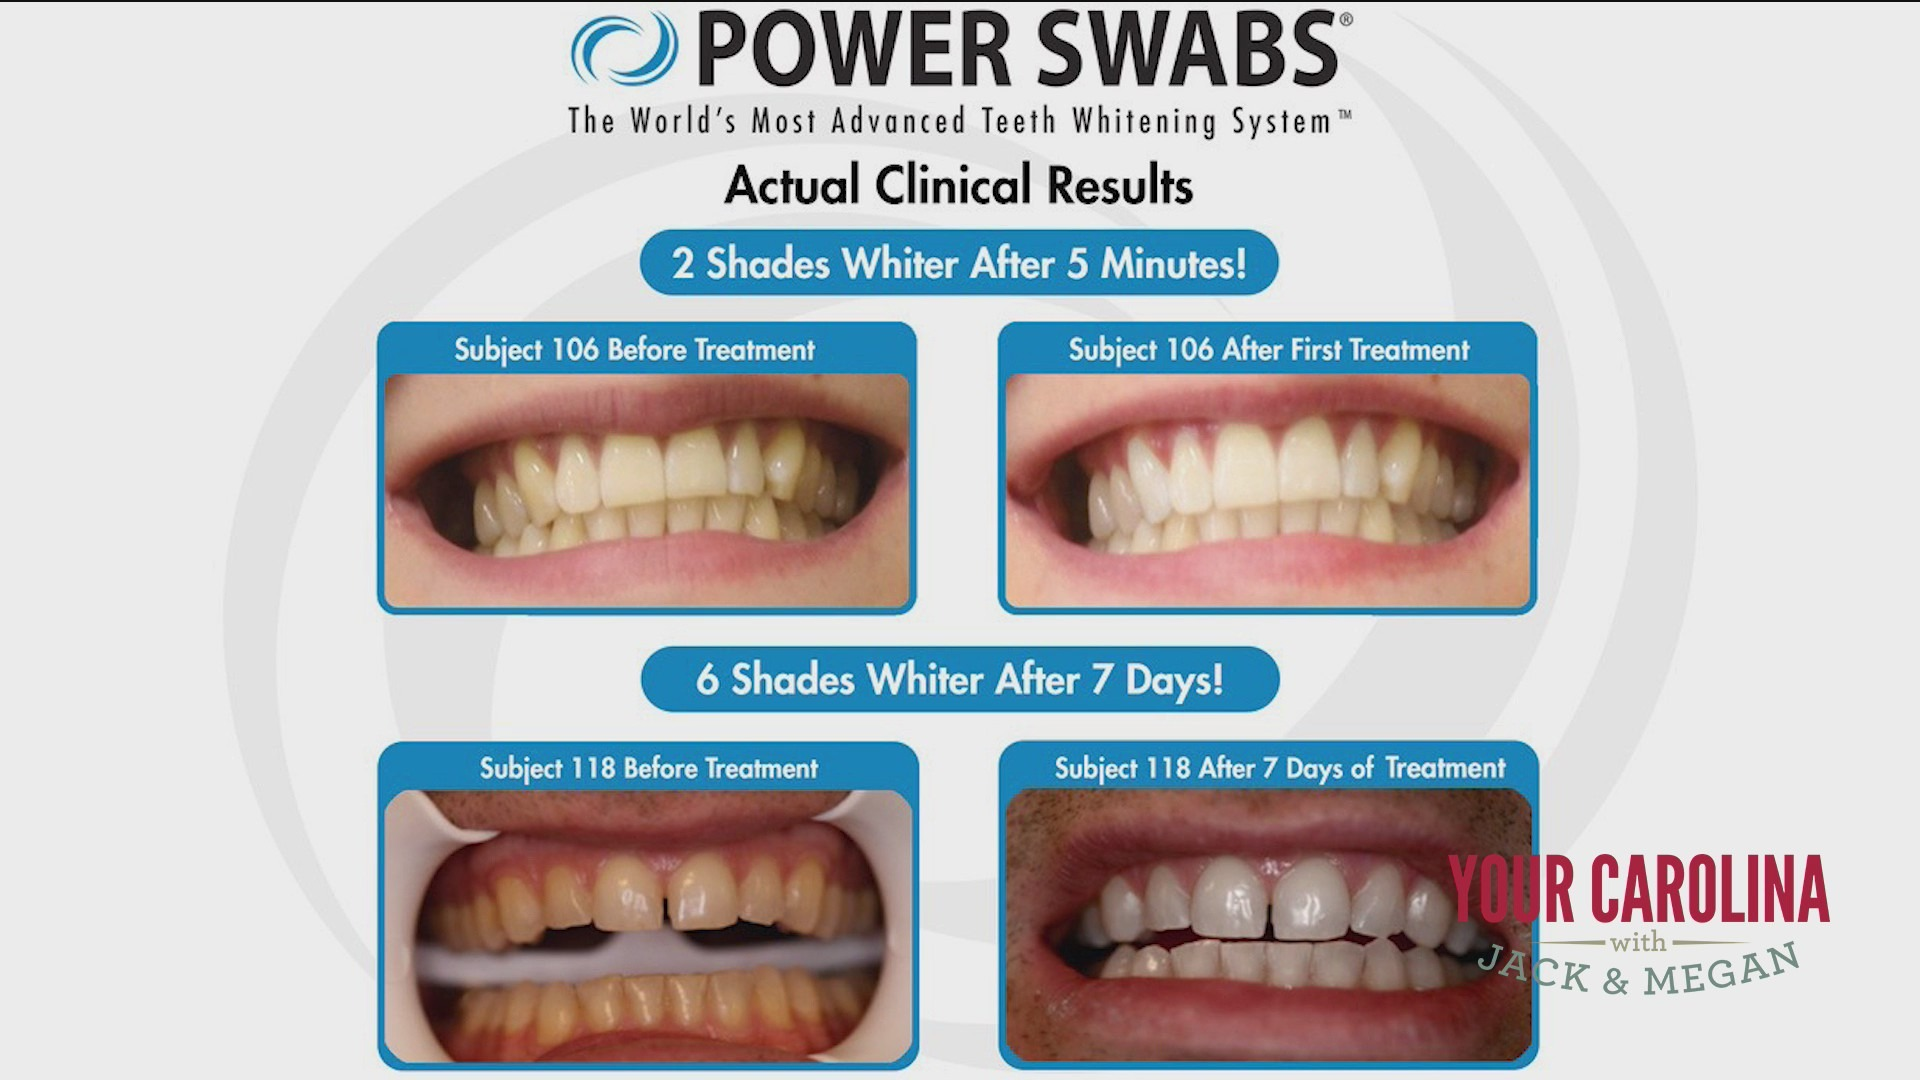 Power Swabs Fights The Toughest Stains